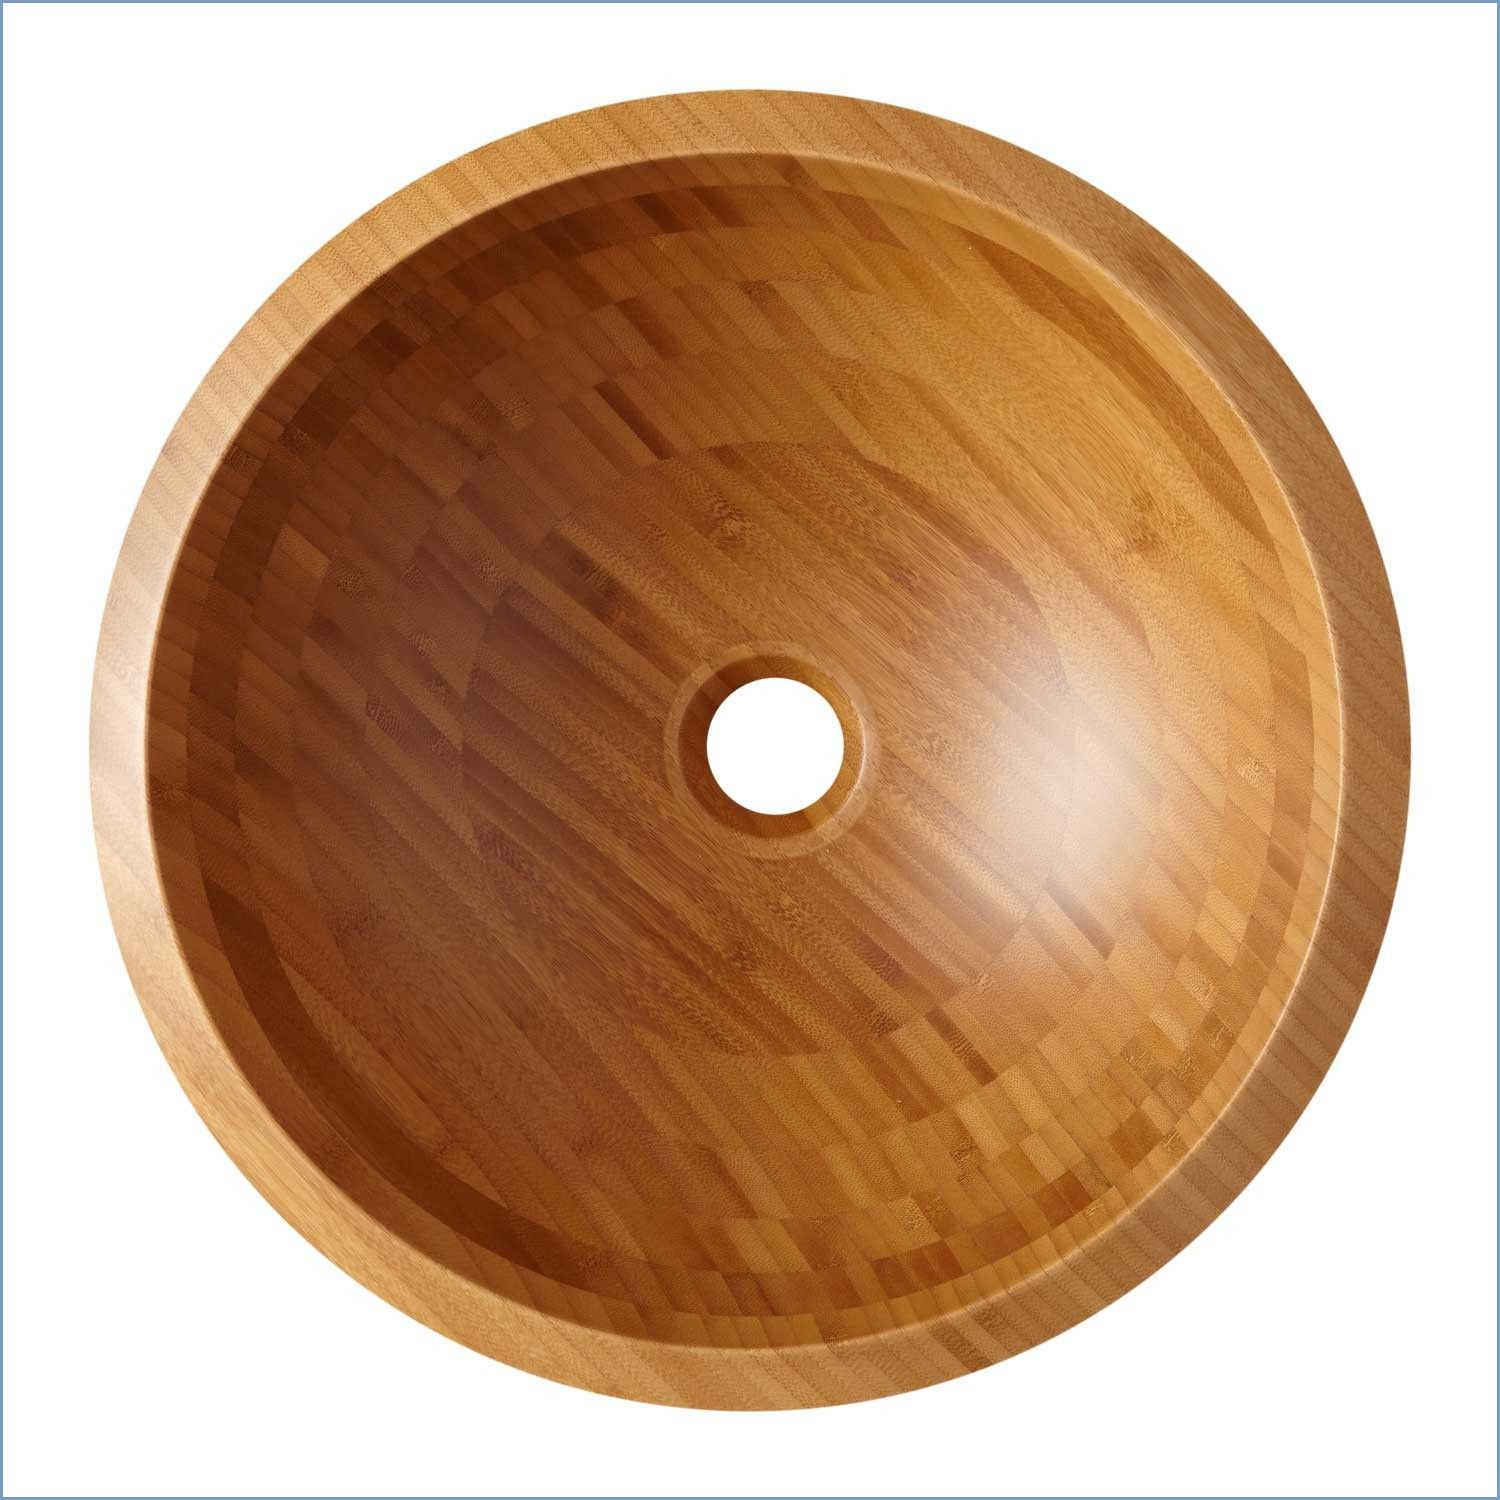 bamboo-vessel-sink-faucet-fresh-home-bathroom-round-bamboo-vessel ...